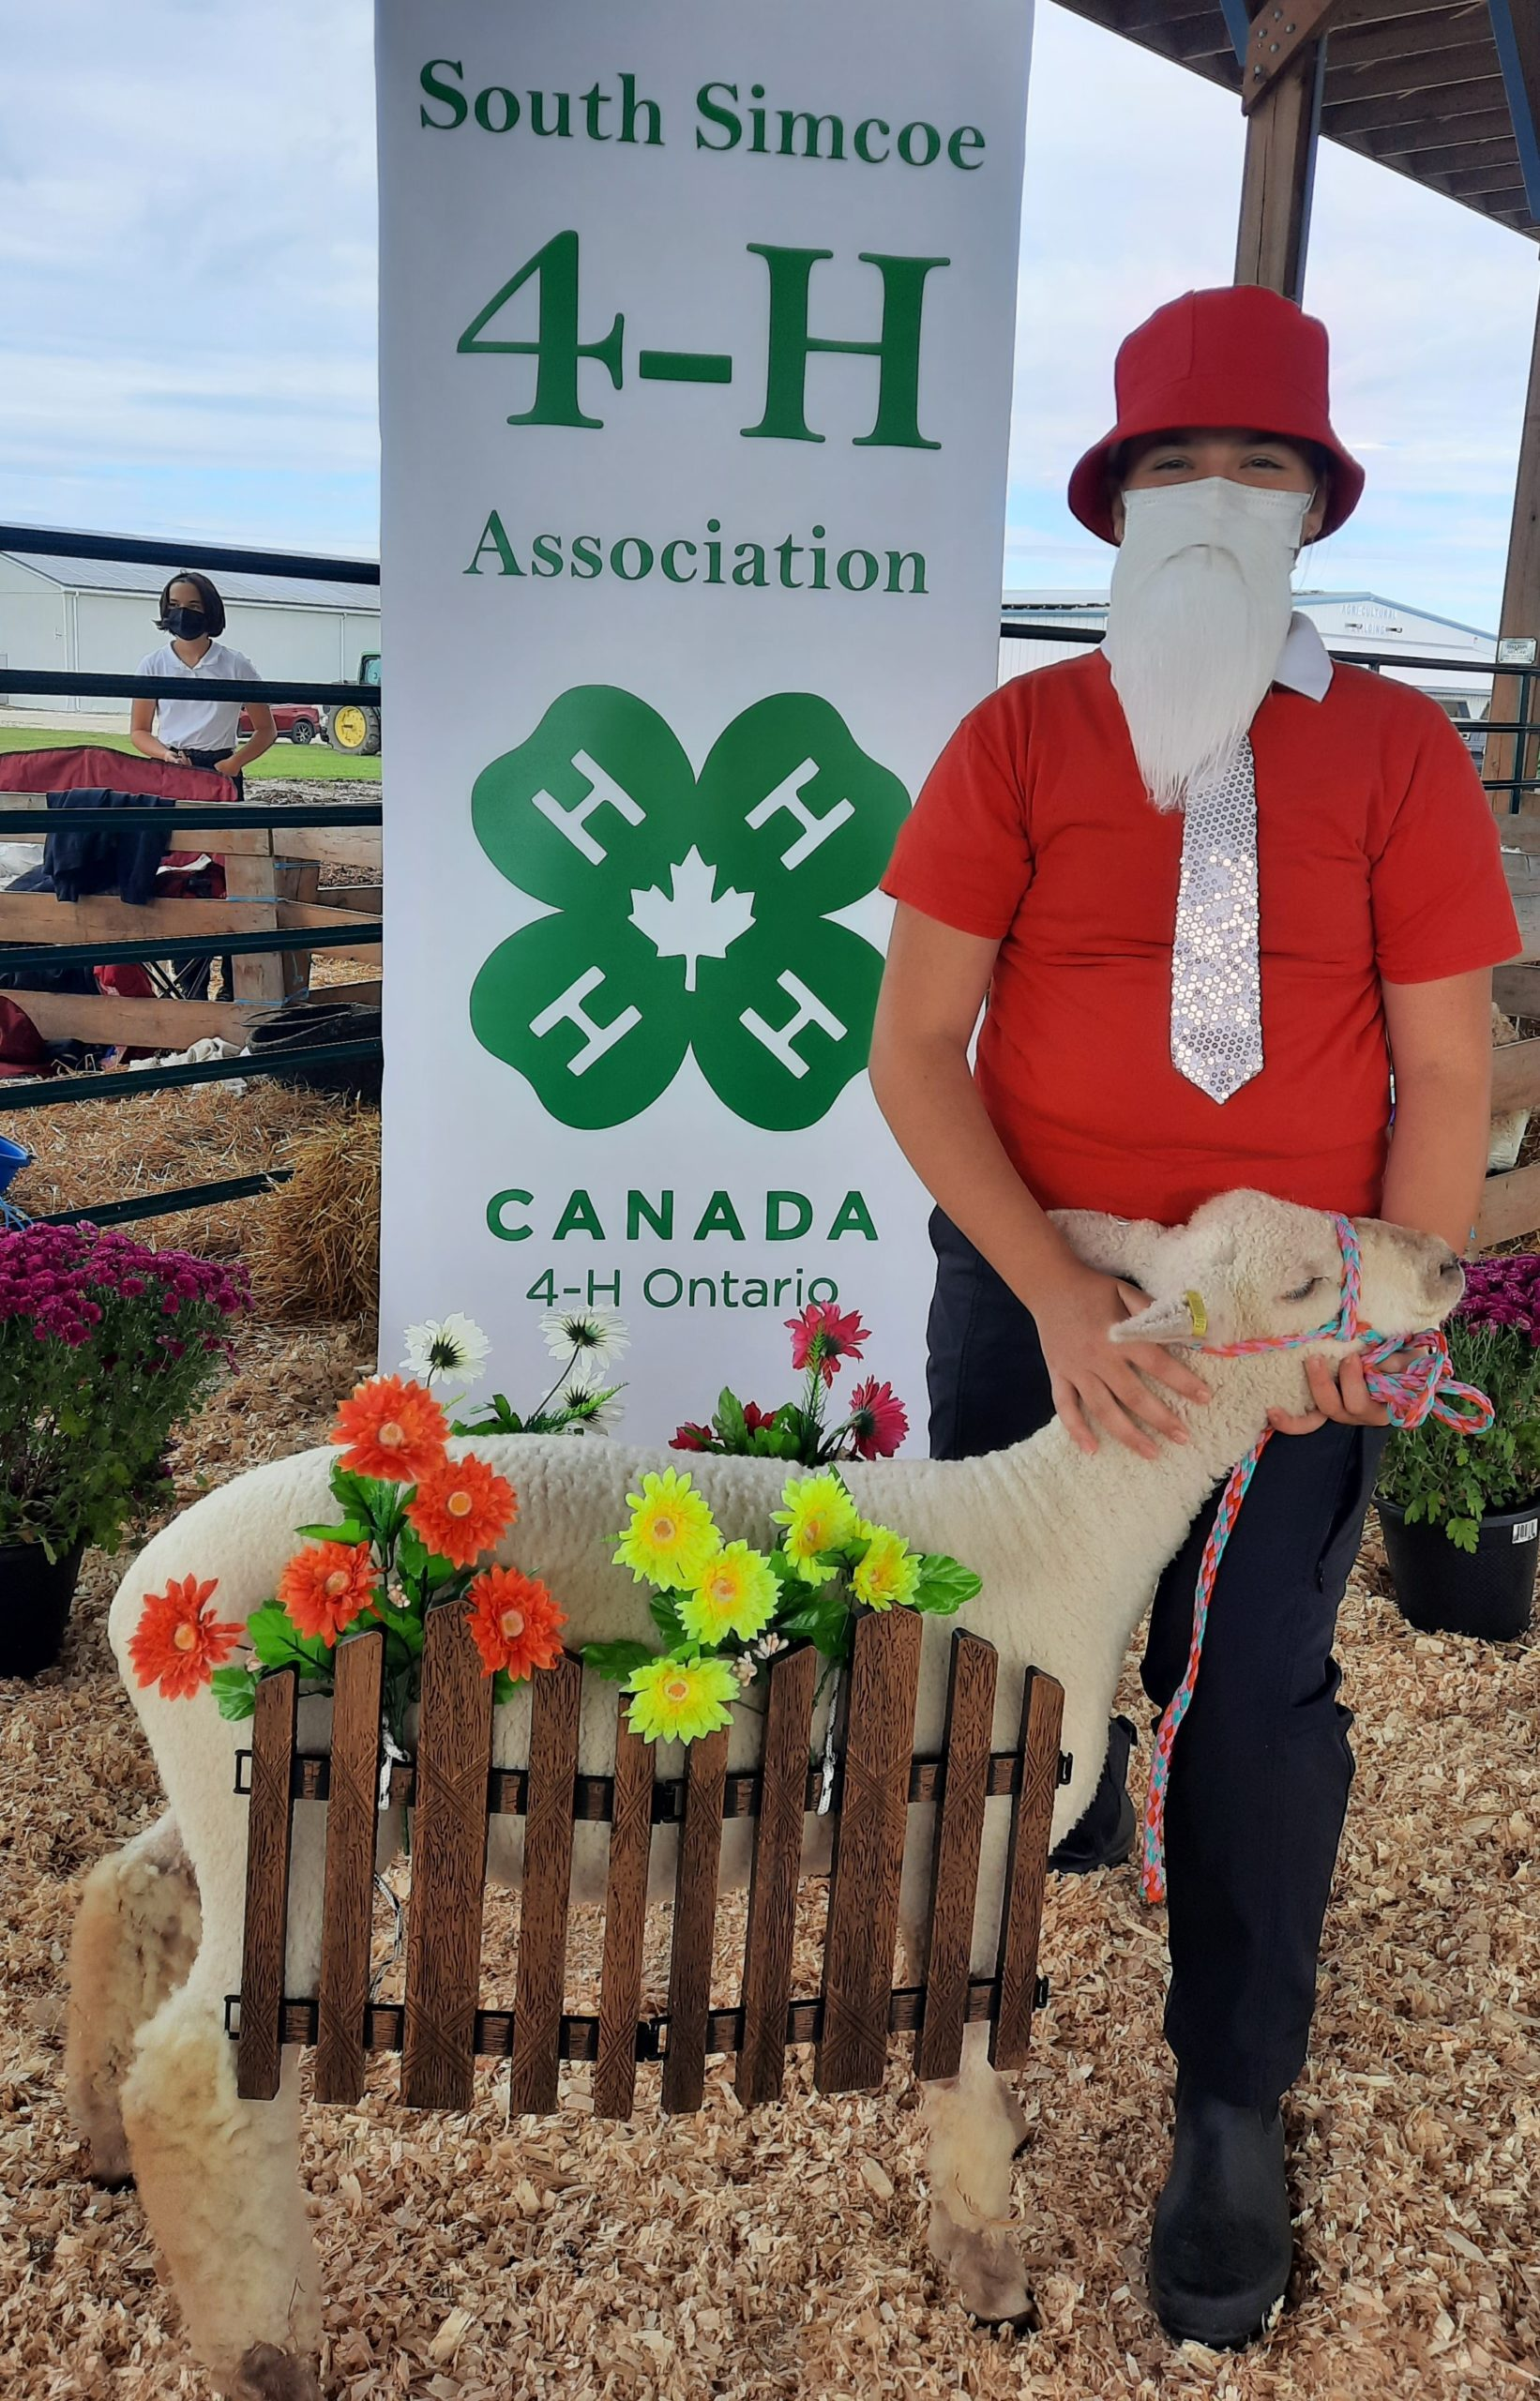 Member and lamb dressed as a gnome and flowers with fence